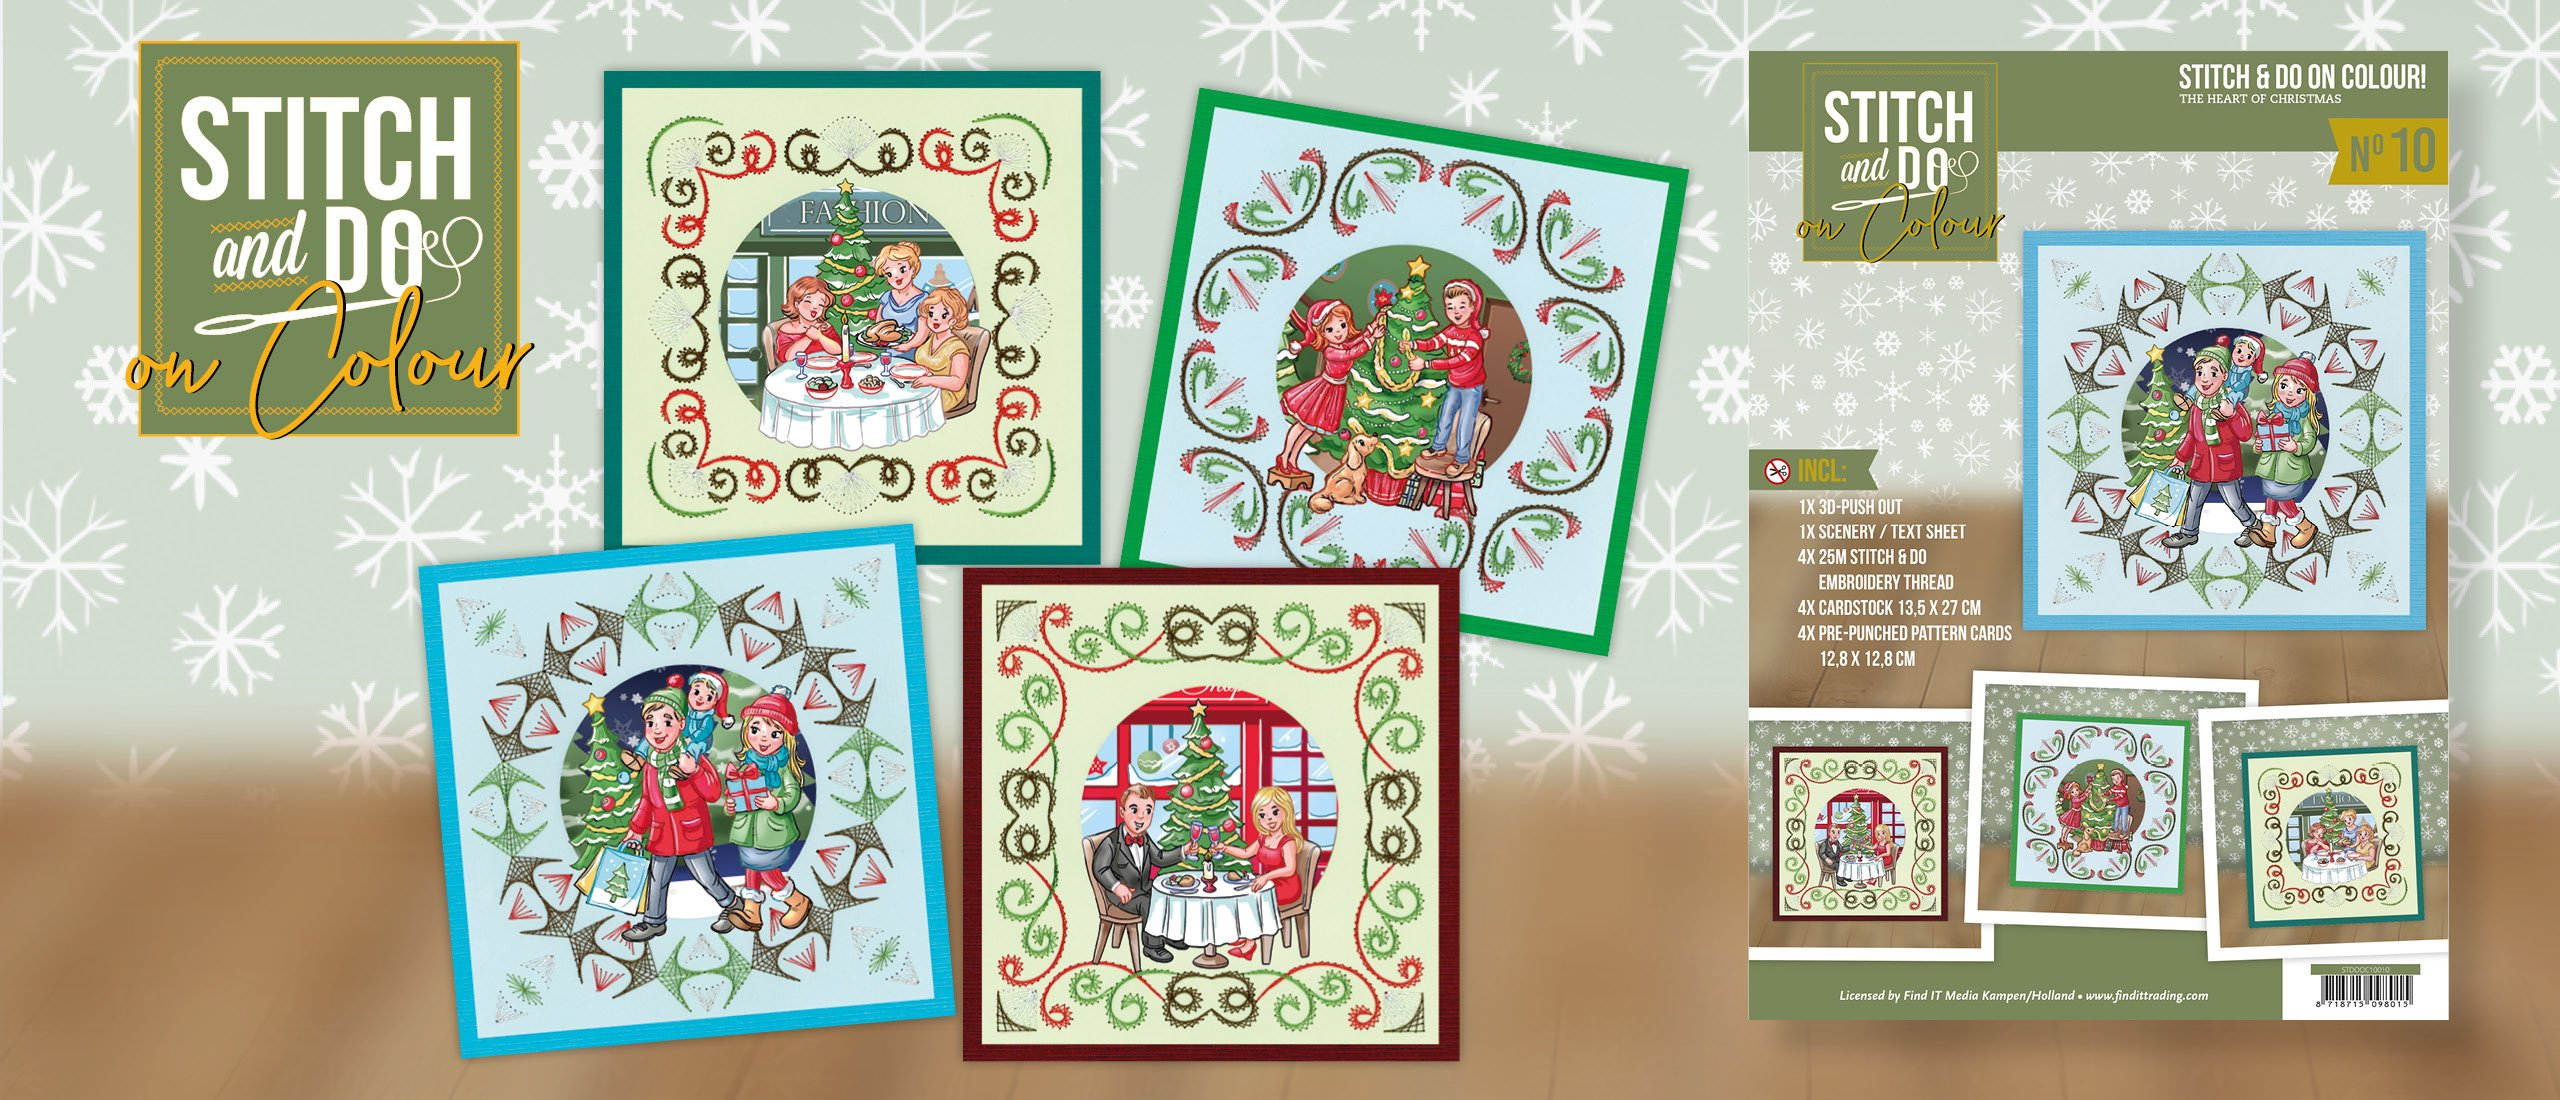 Stitch and Do on Colour 010 STDOOC10010 The Heart of Christmas